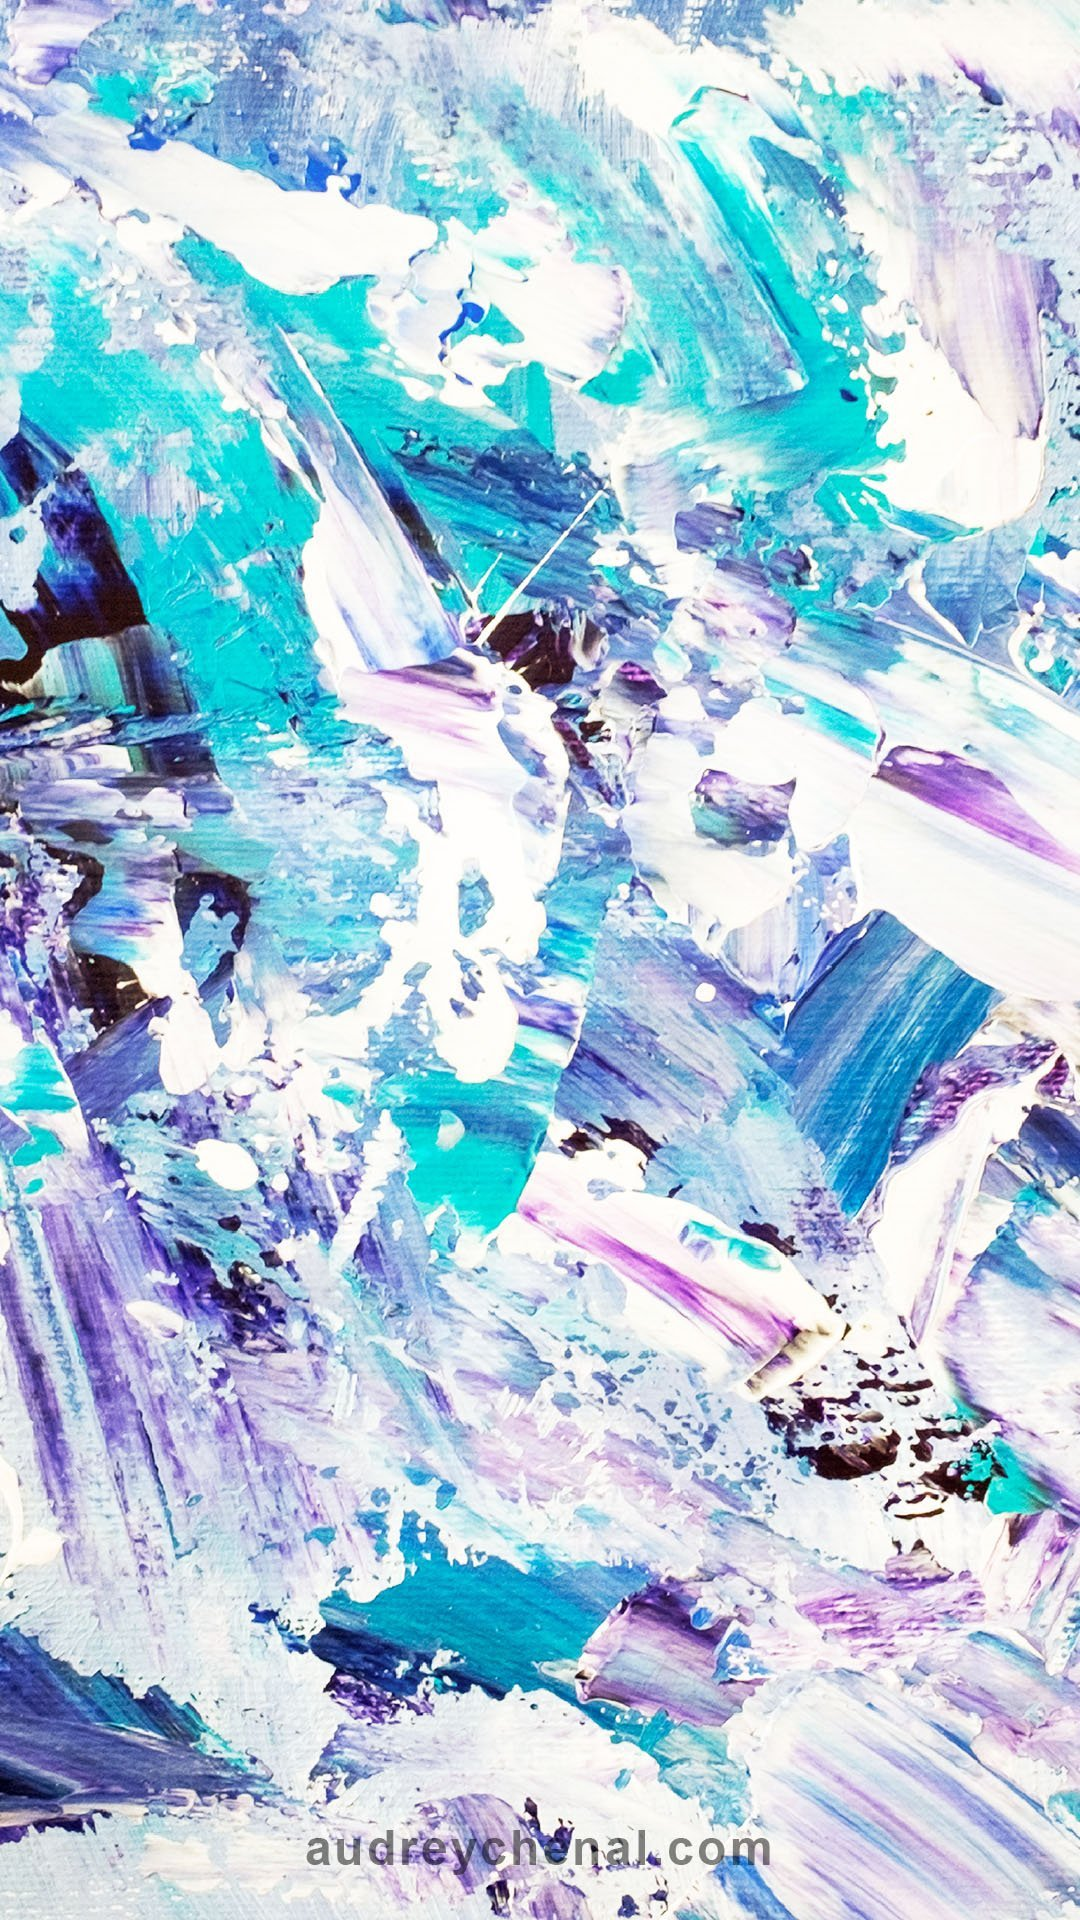 Purple turquoise blue abstract brushstrokes acrylic painting wallpaper by Audrey Chenal